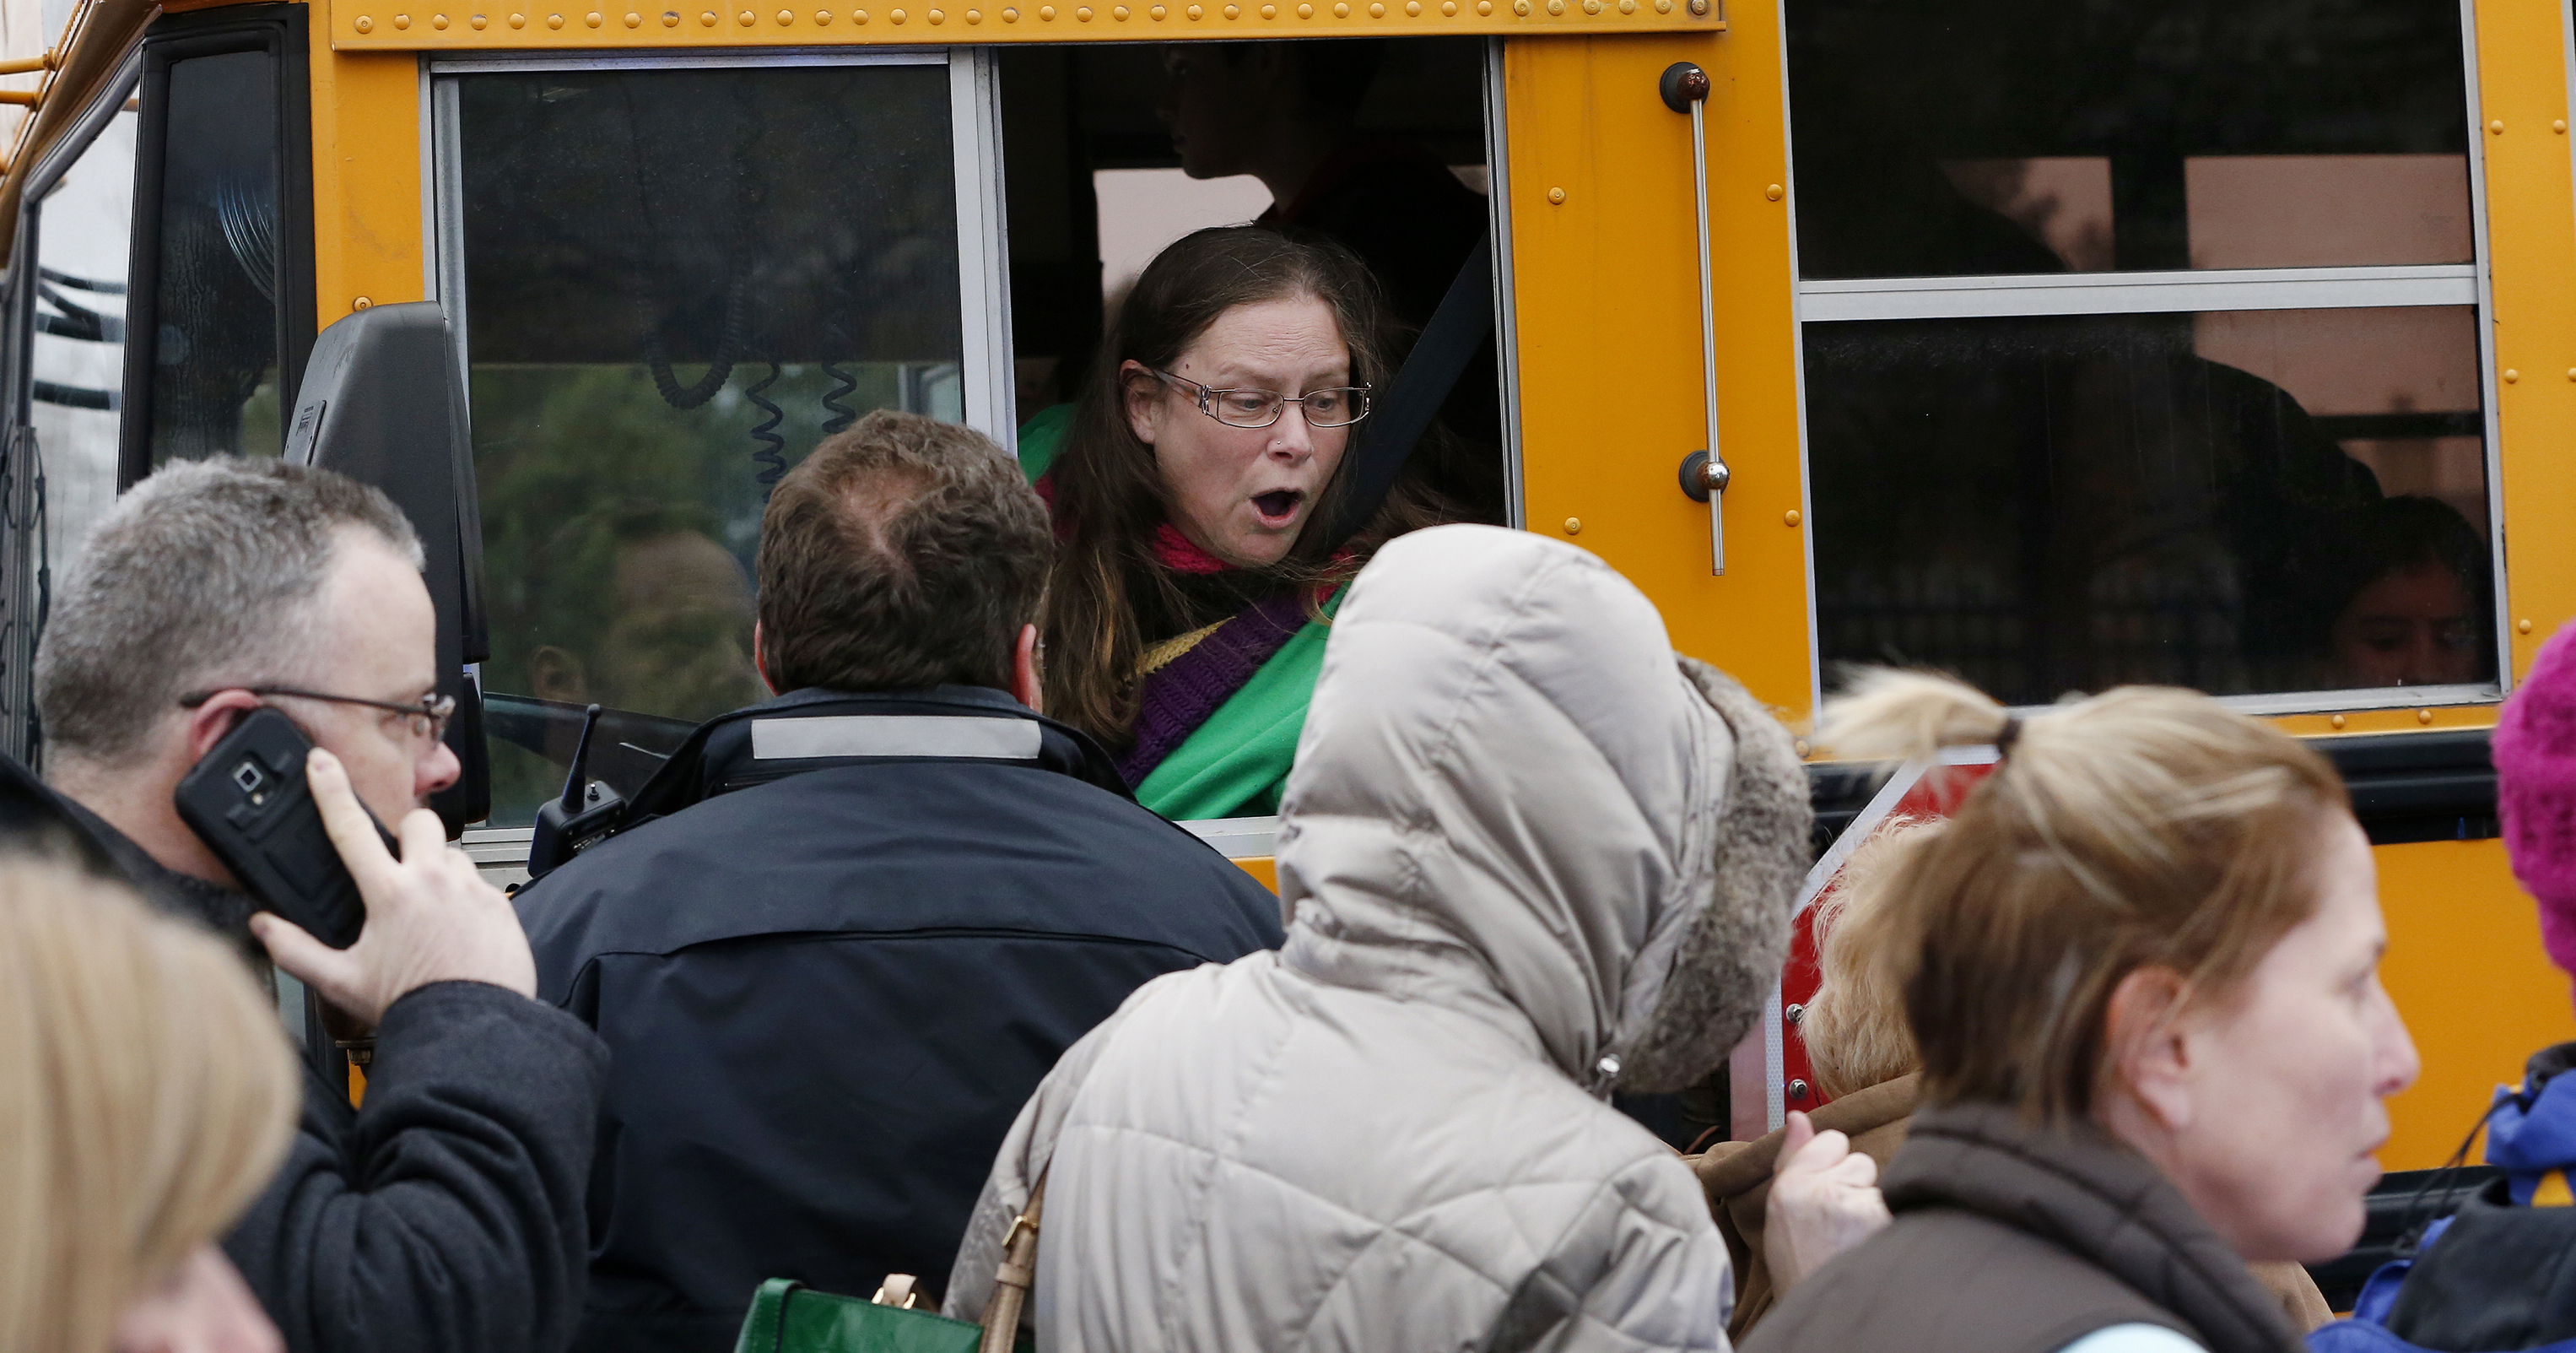 A school bus driver yells to a parent that their child is safe after a bus accident at Amy Beverland Elementary School that left several students injured and one adult dead on school grounds on Jan. 26, 2016 in Indianapolis, Ind.